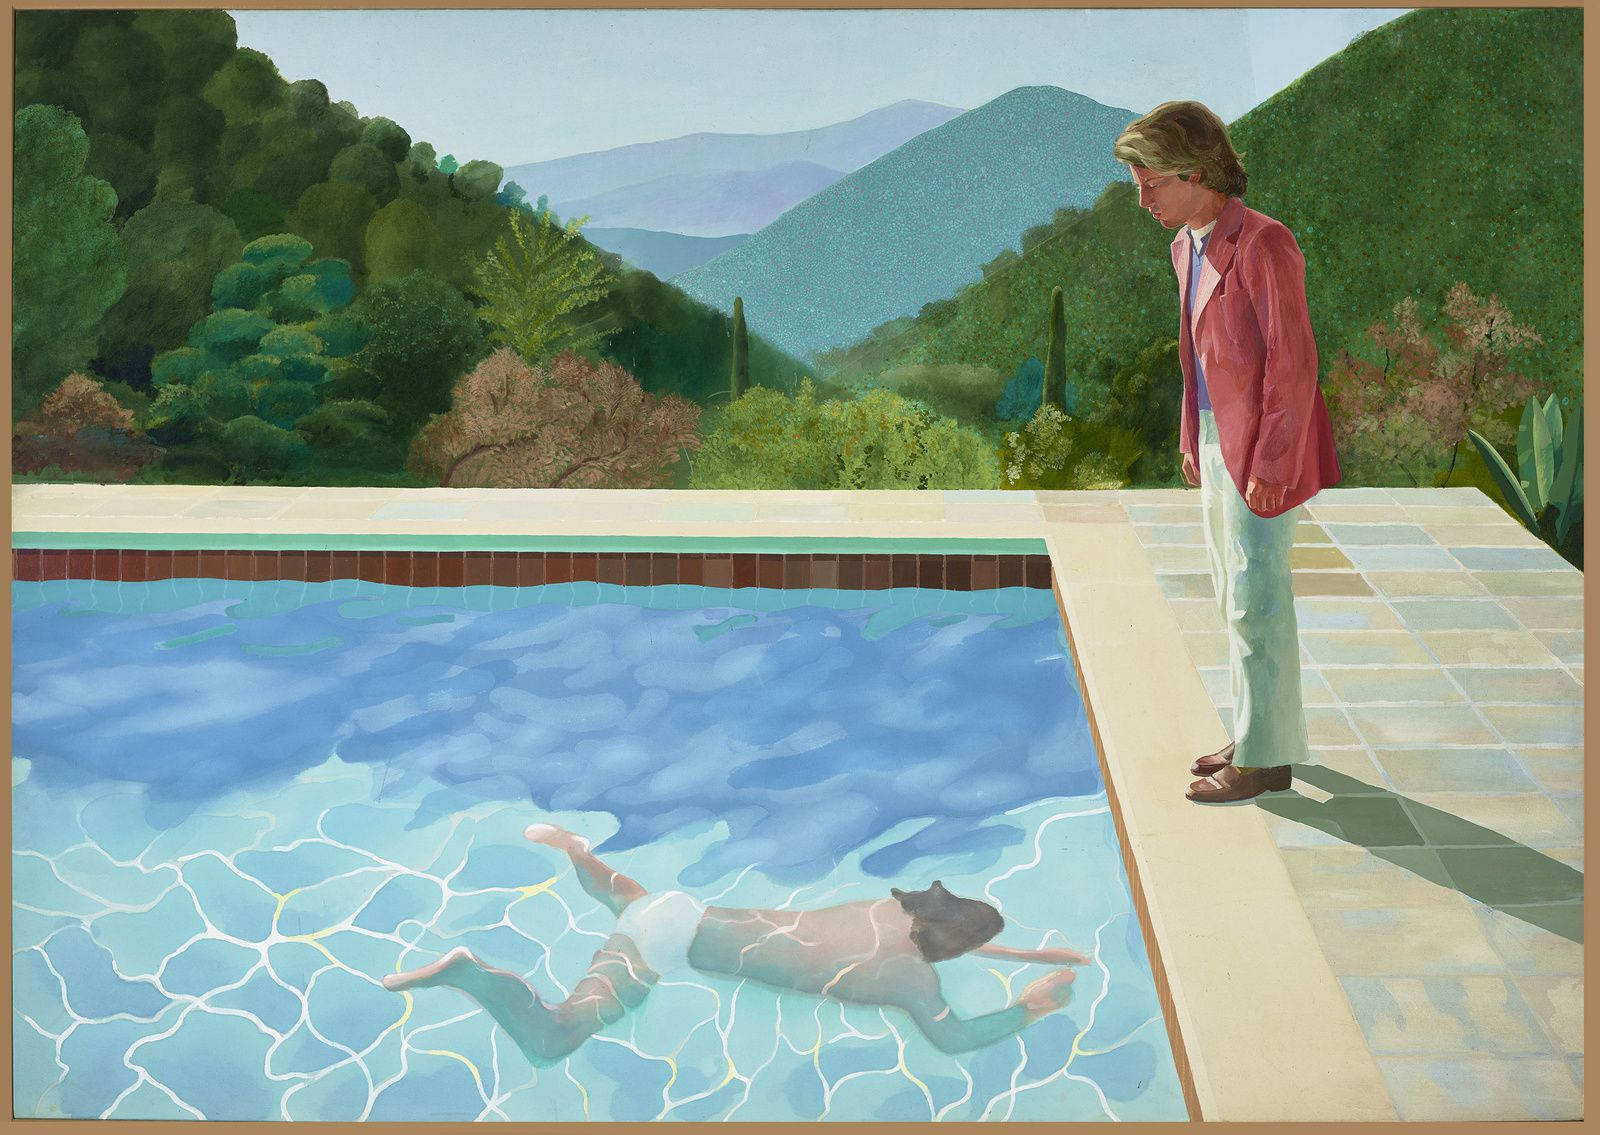 """Portrait d'un Artiste (Piscine avec deux personnages)"", 1972 de David HOCKNEY - Courtesy Art Gallery of New South Wales"